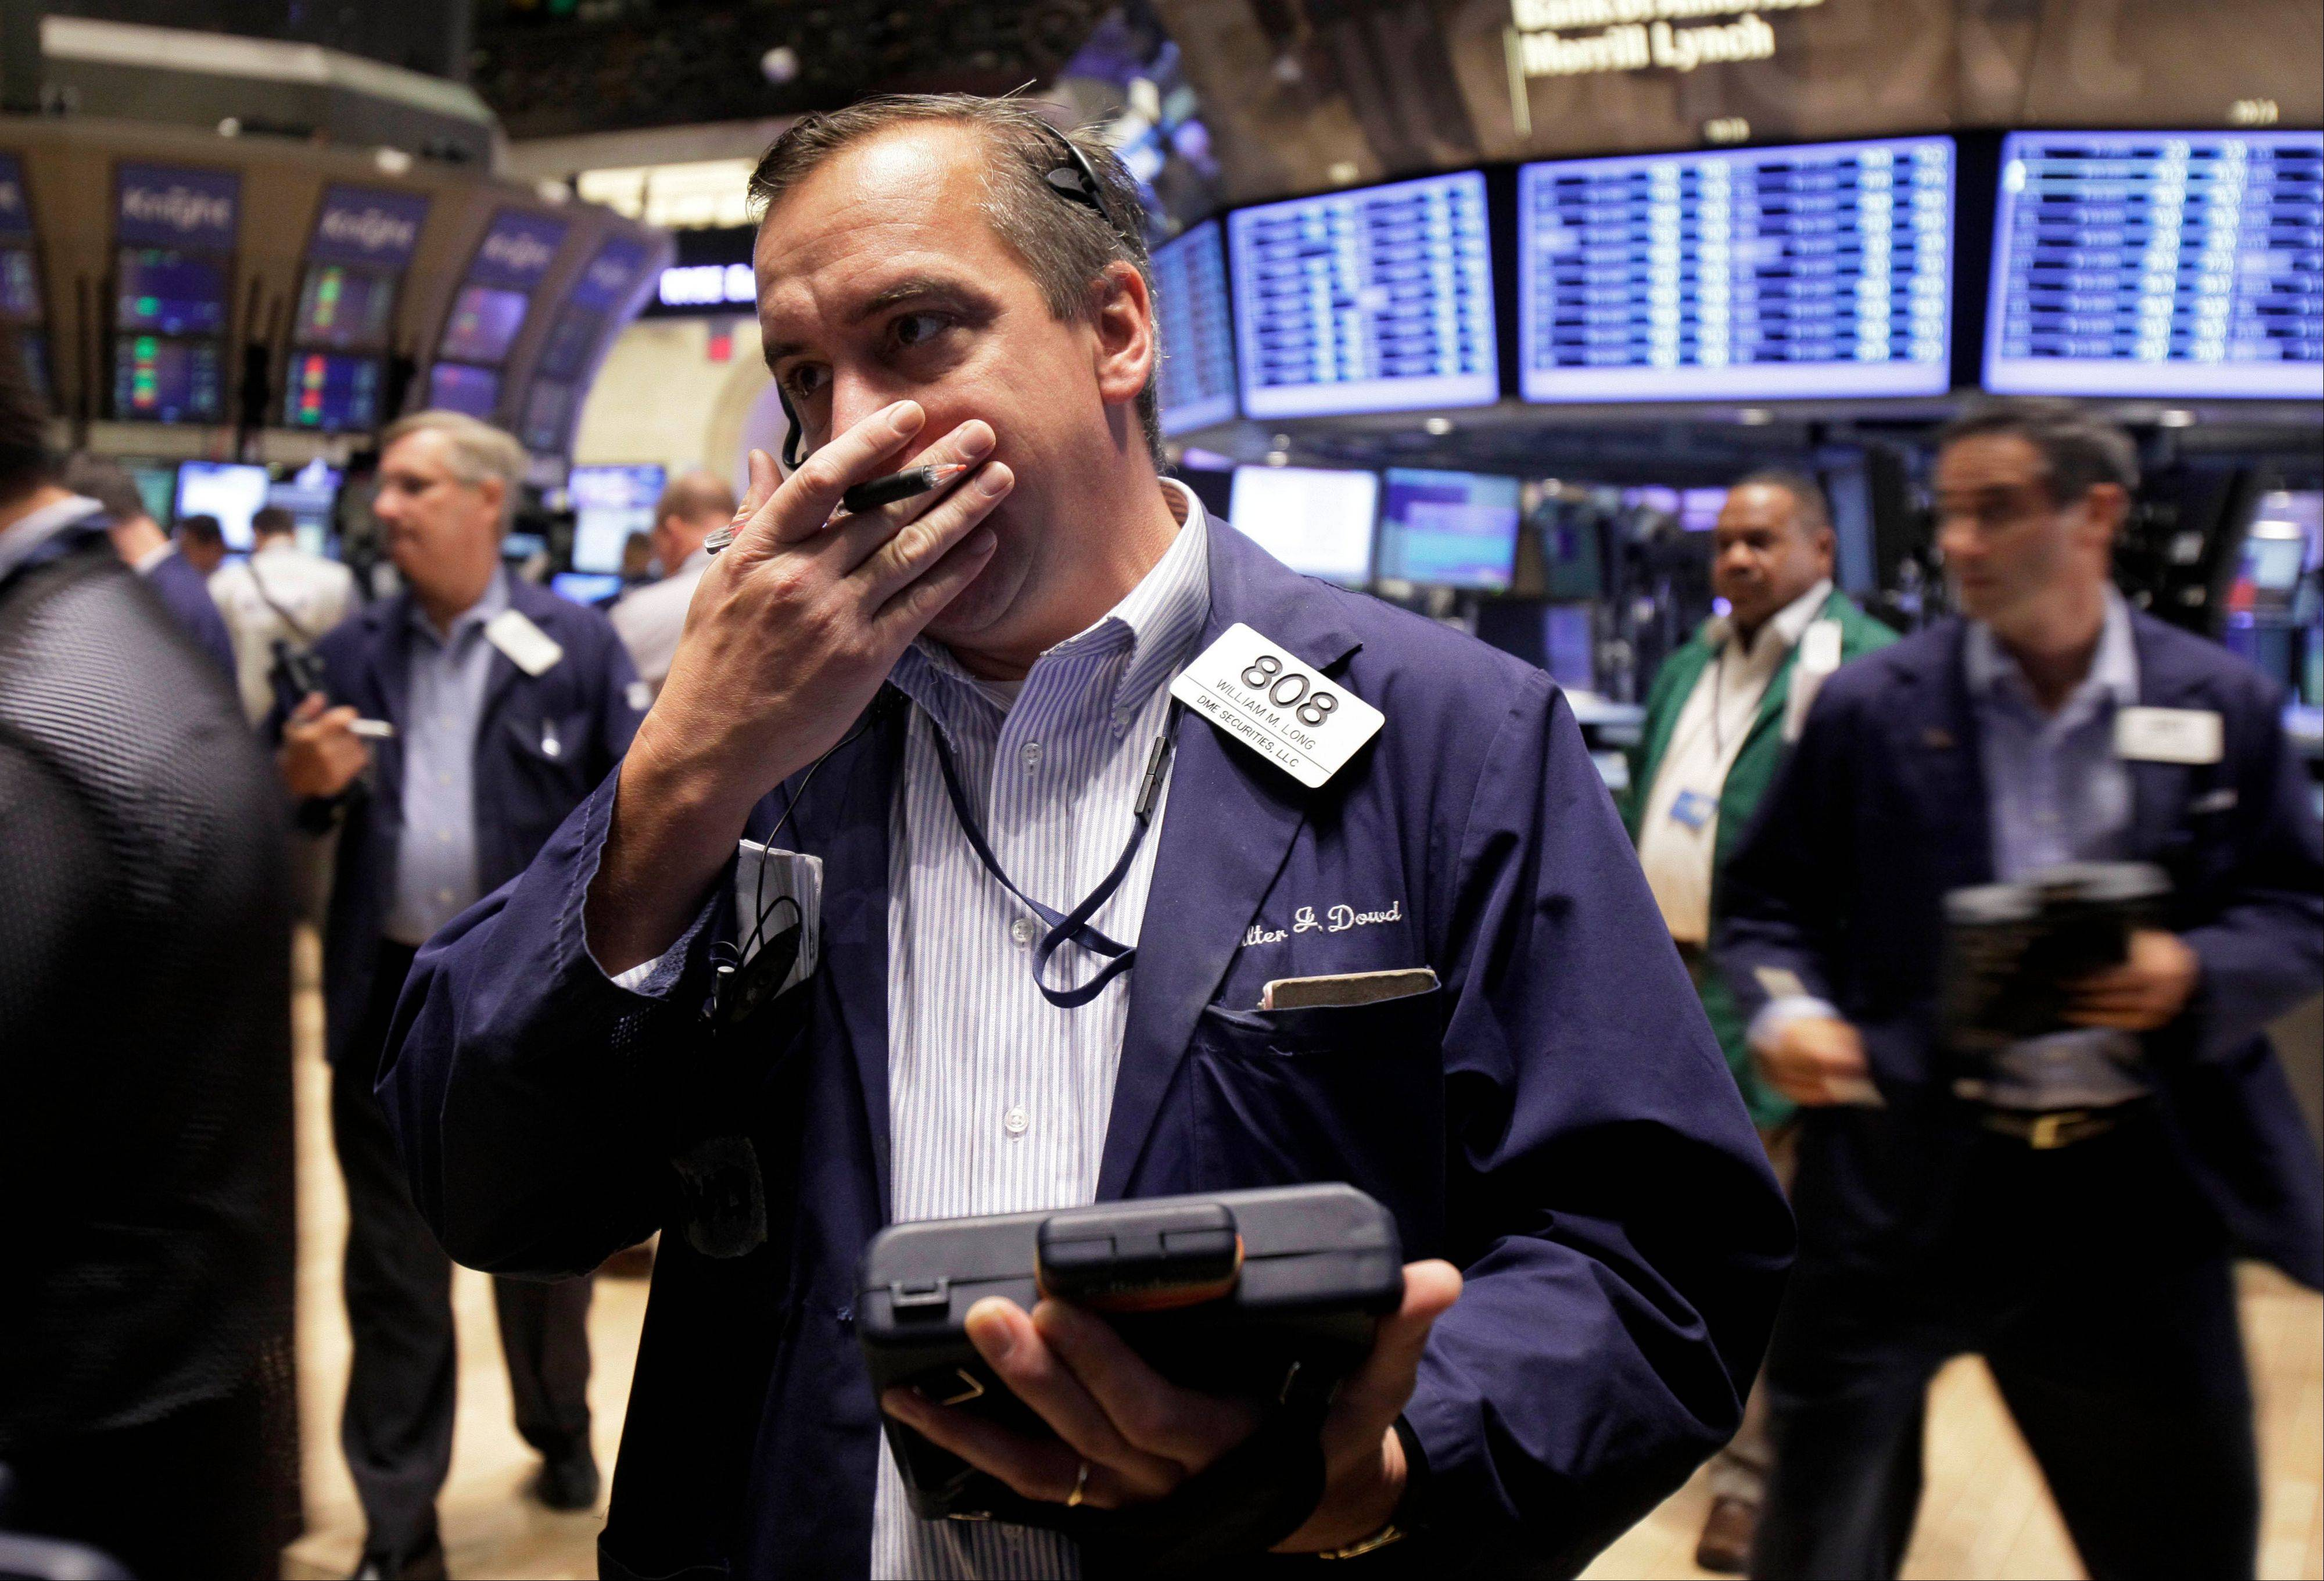 Wall Street firms pushed up estimates for Standard & Poor�s 500 Index earnings for a 10th straight quarter, forecasting a 17 percent gain in 2011, data compiled by Bloomberg show. That�s 9.9 times more than economists say gross domestic product will grow. The average ratio since 1954 is 5.4 times, the data show.